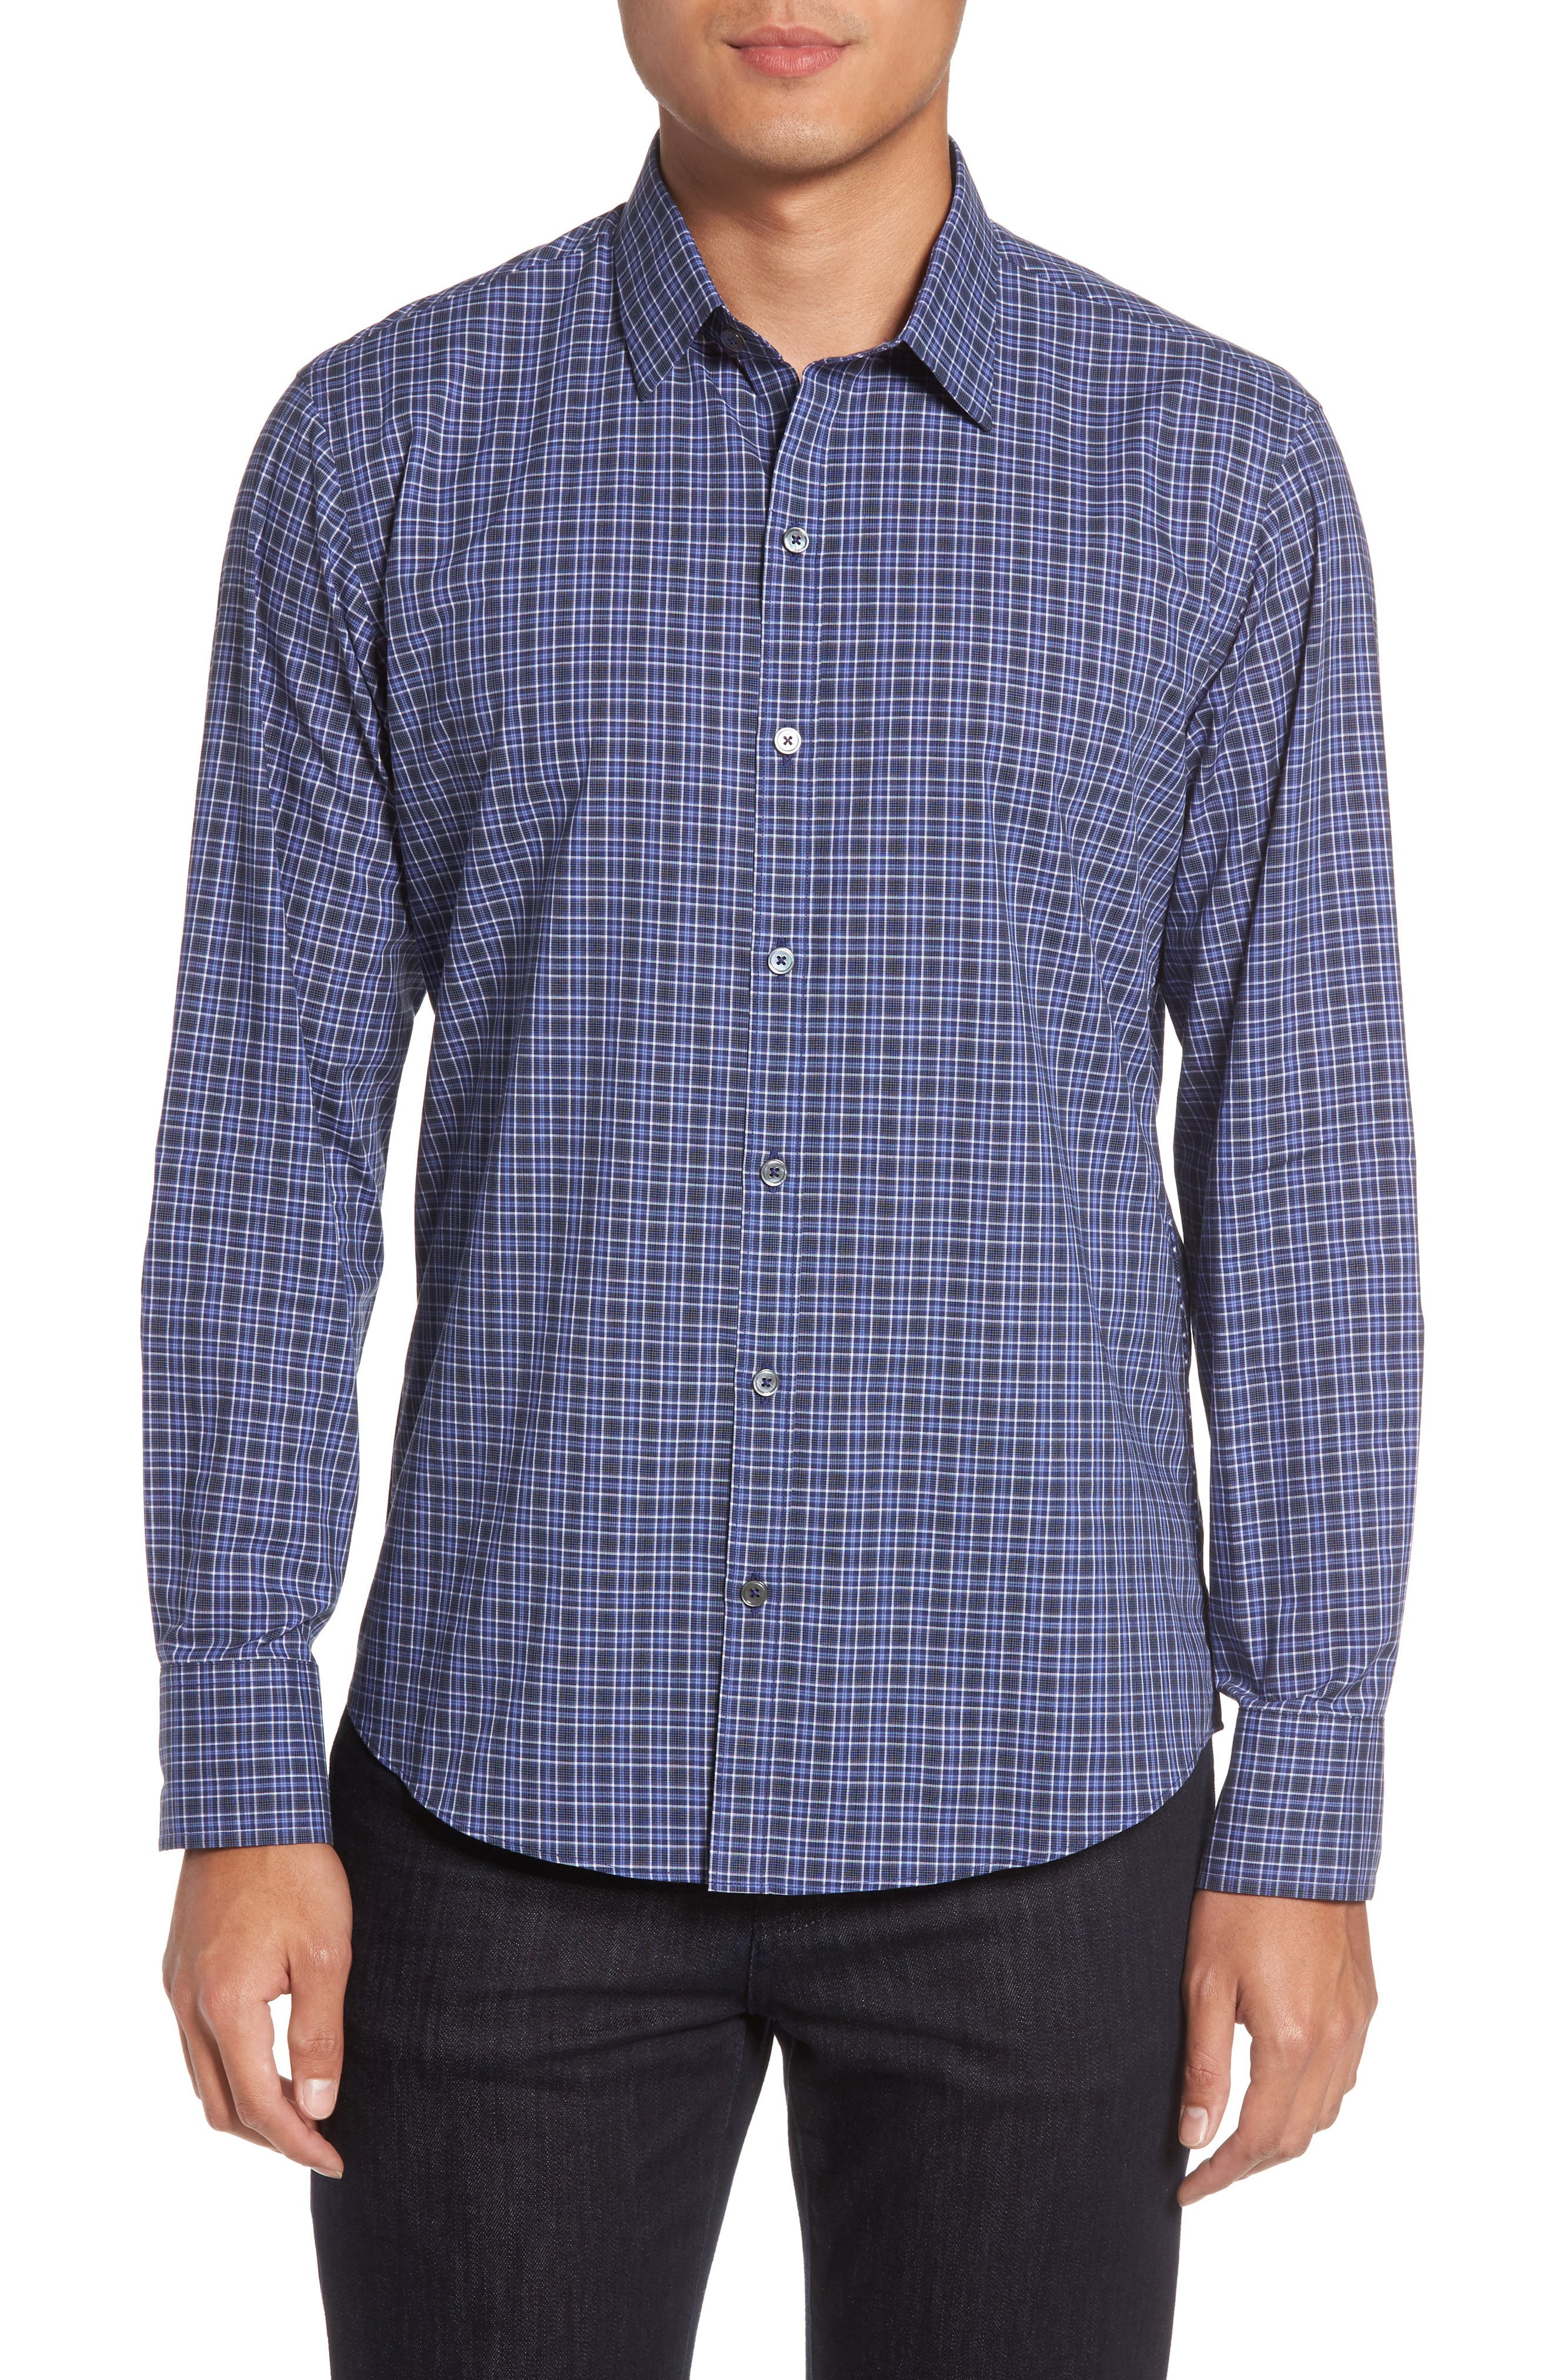 Alternate Image 1 Selected - Zachary Prell Barnum Slim Fit Check Sport Shirt